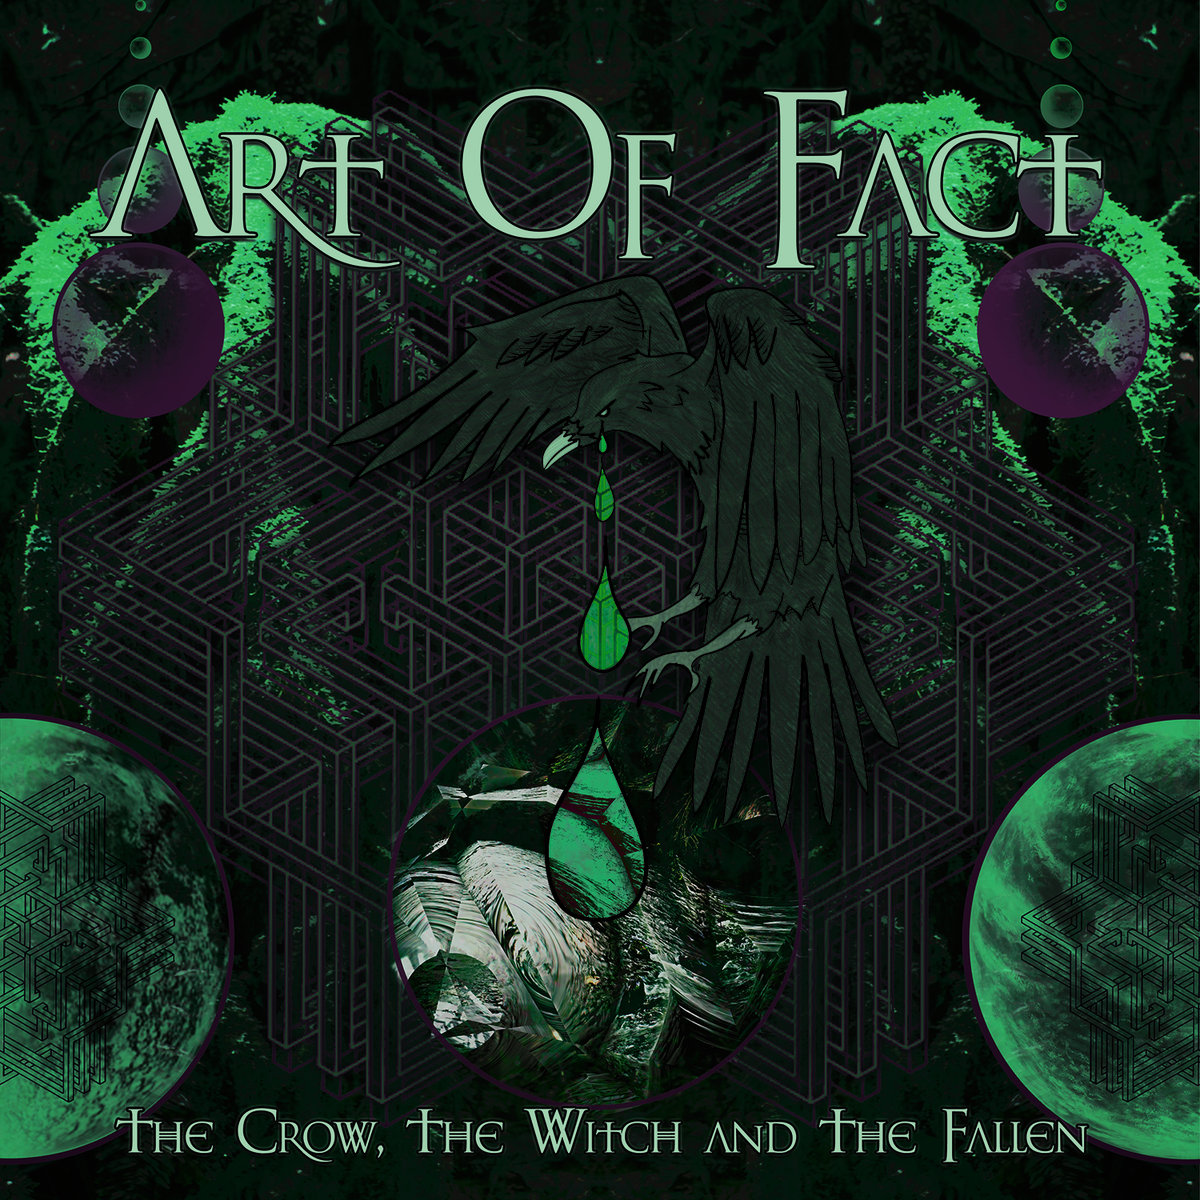 Art Of Fact - The Spell @ 'The Crow, The Witch and The Fallen' album (bass, electronic)